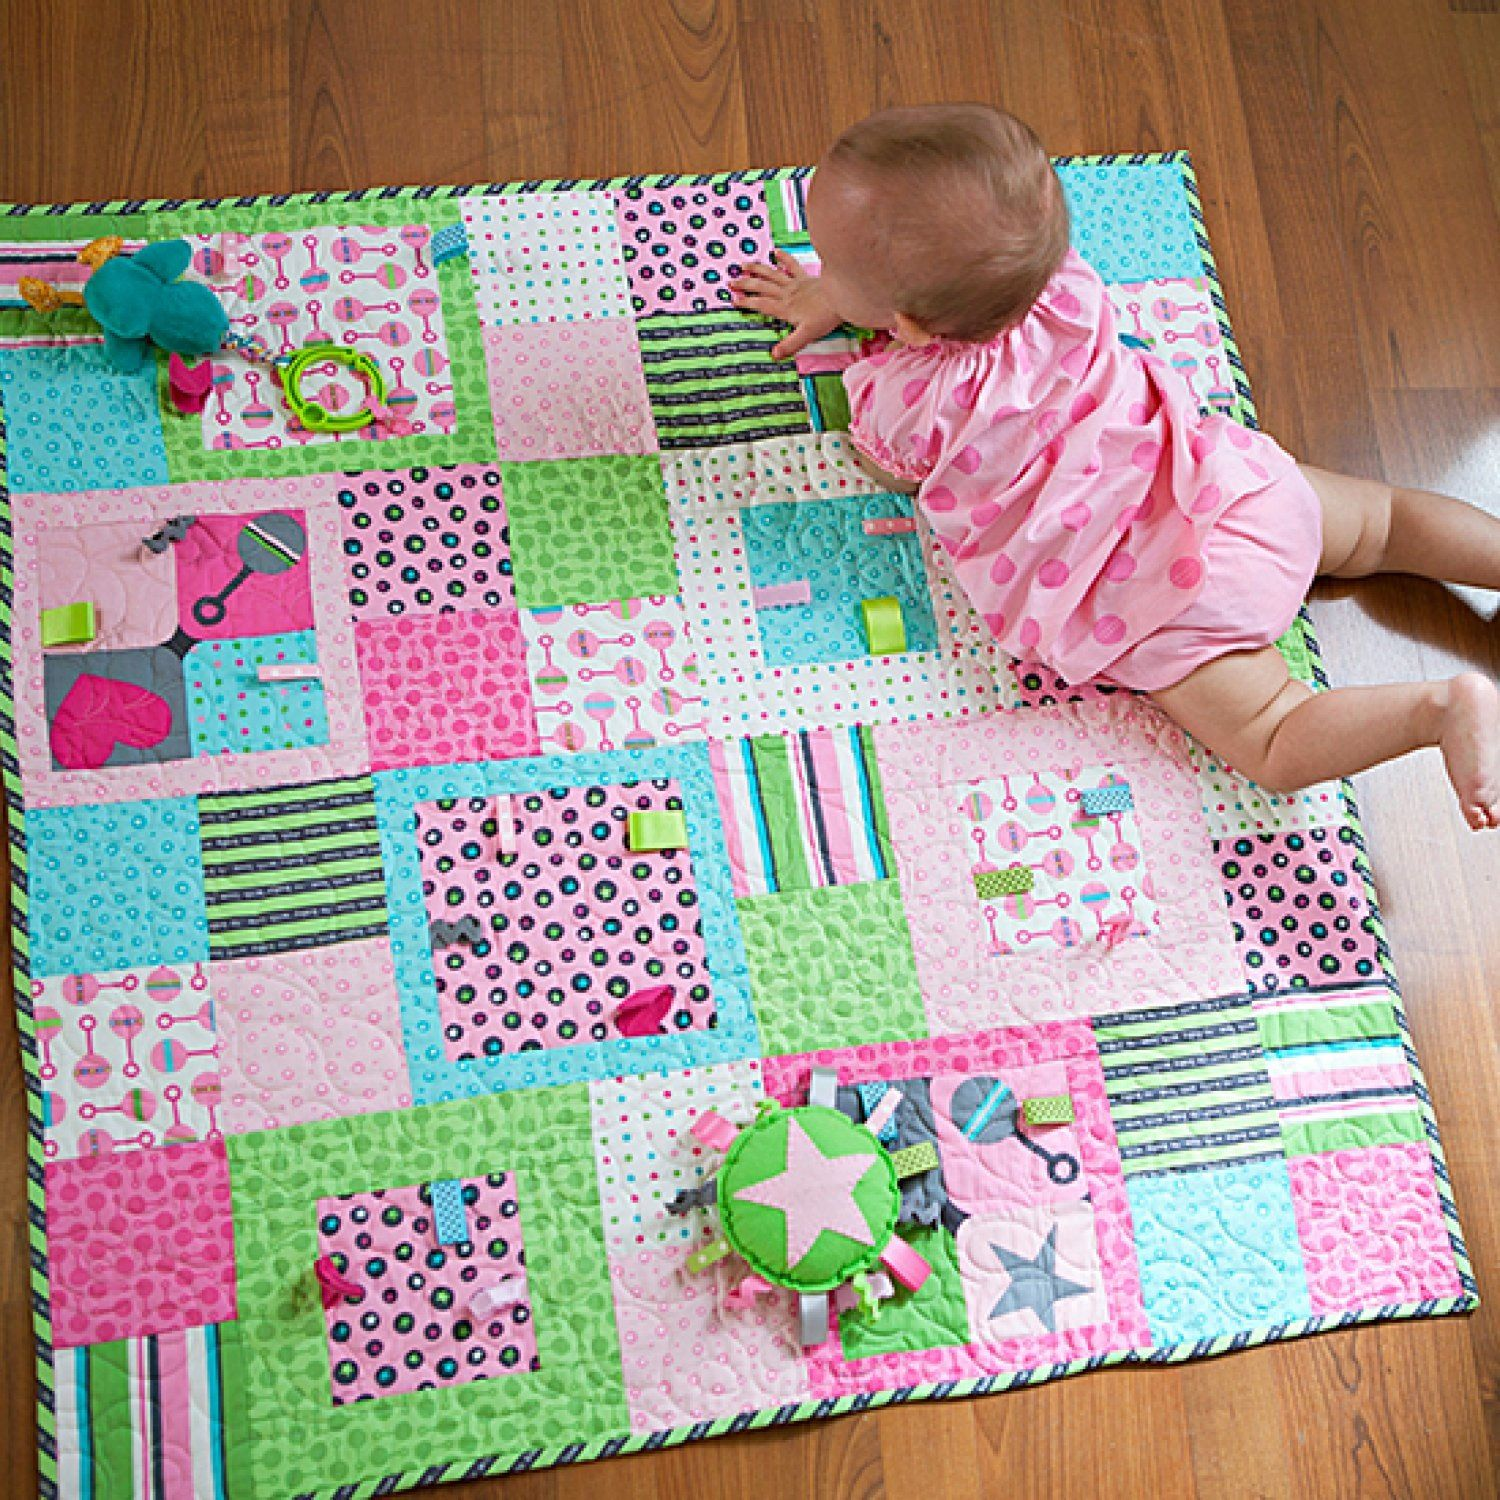 free applique baby quilt patterns quilting ... | linda | Pinterest ... : free applique quilting patterns - Adamdwight.com